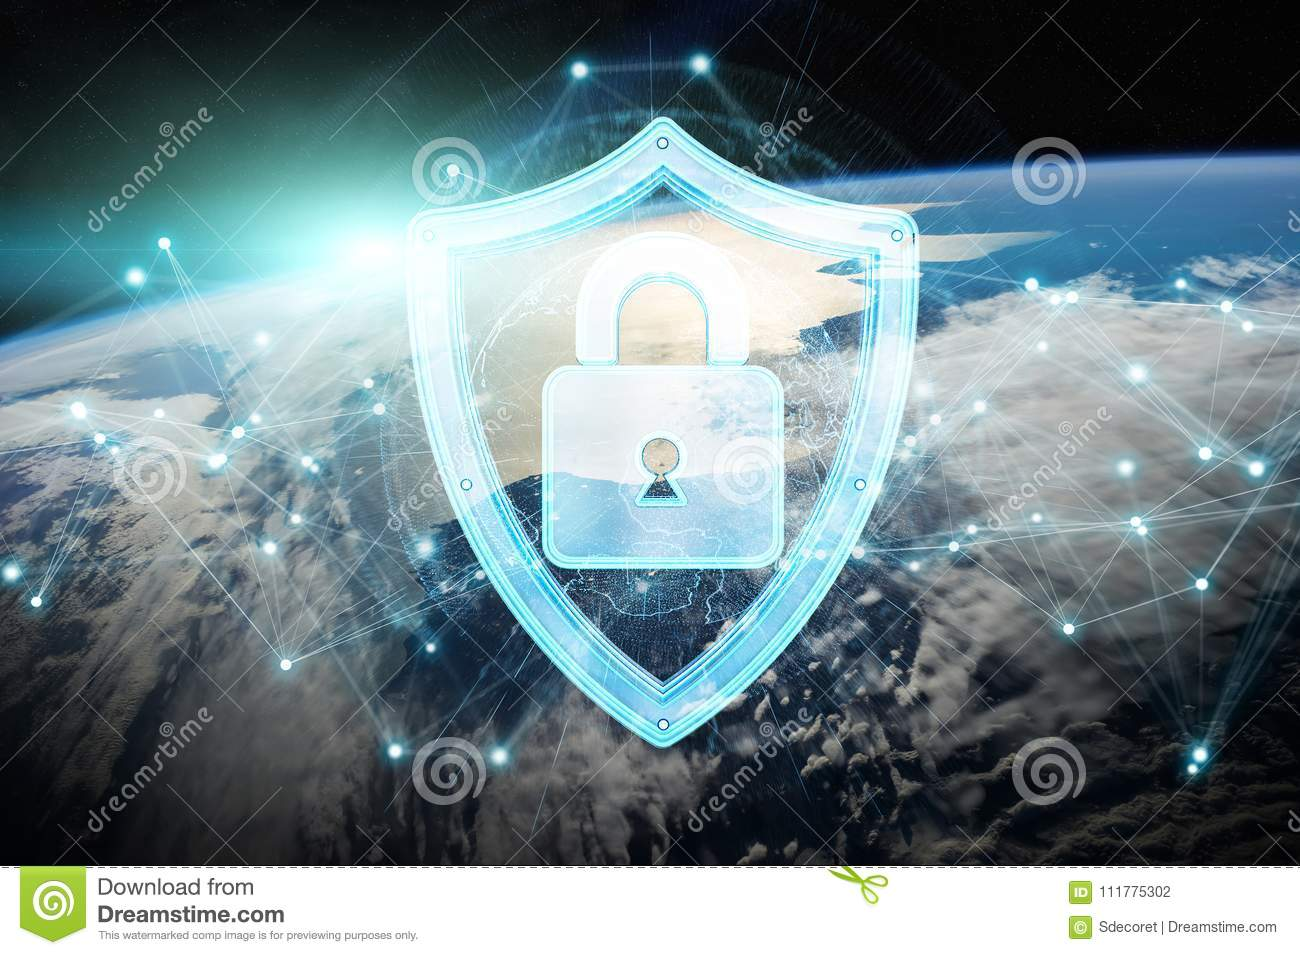 Cyber security on planet Earth 3D rendering